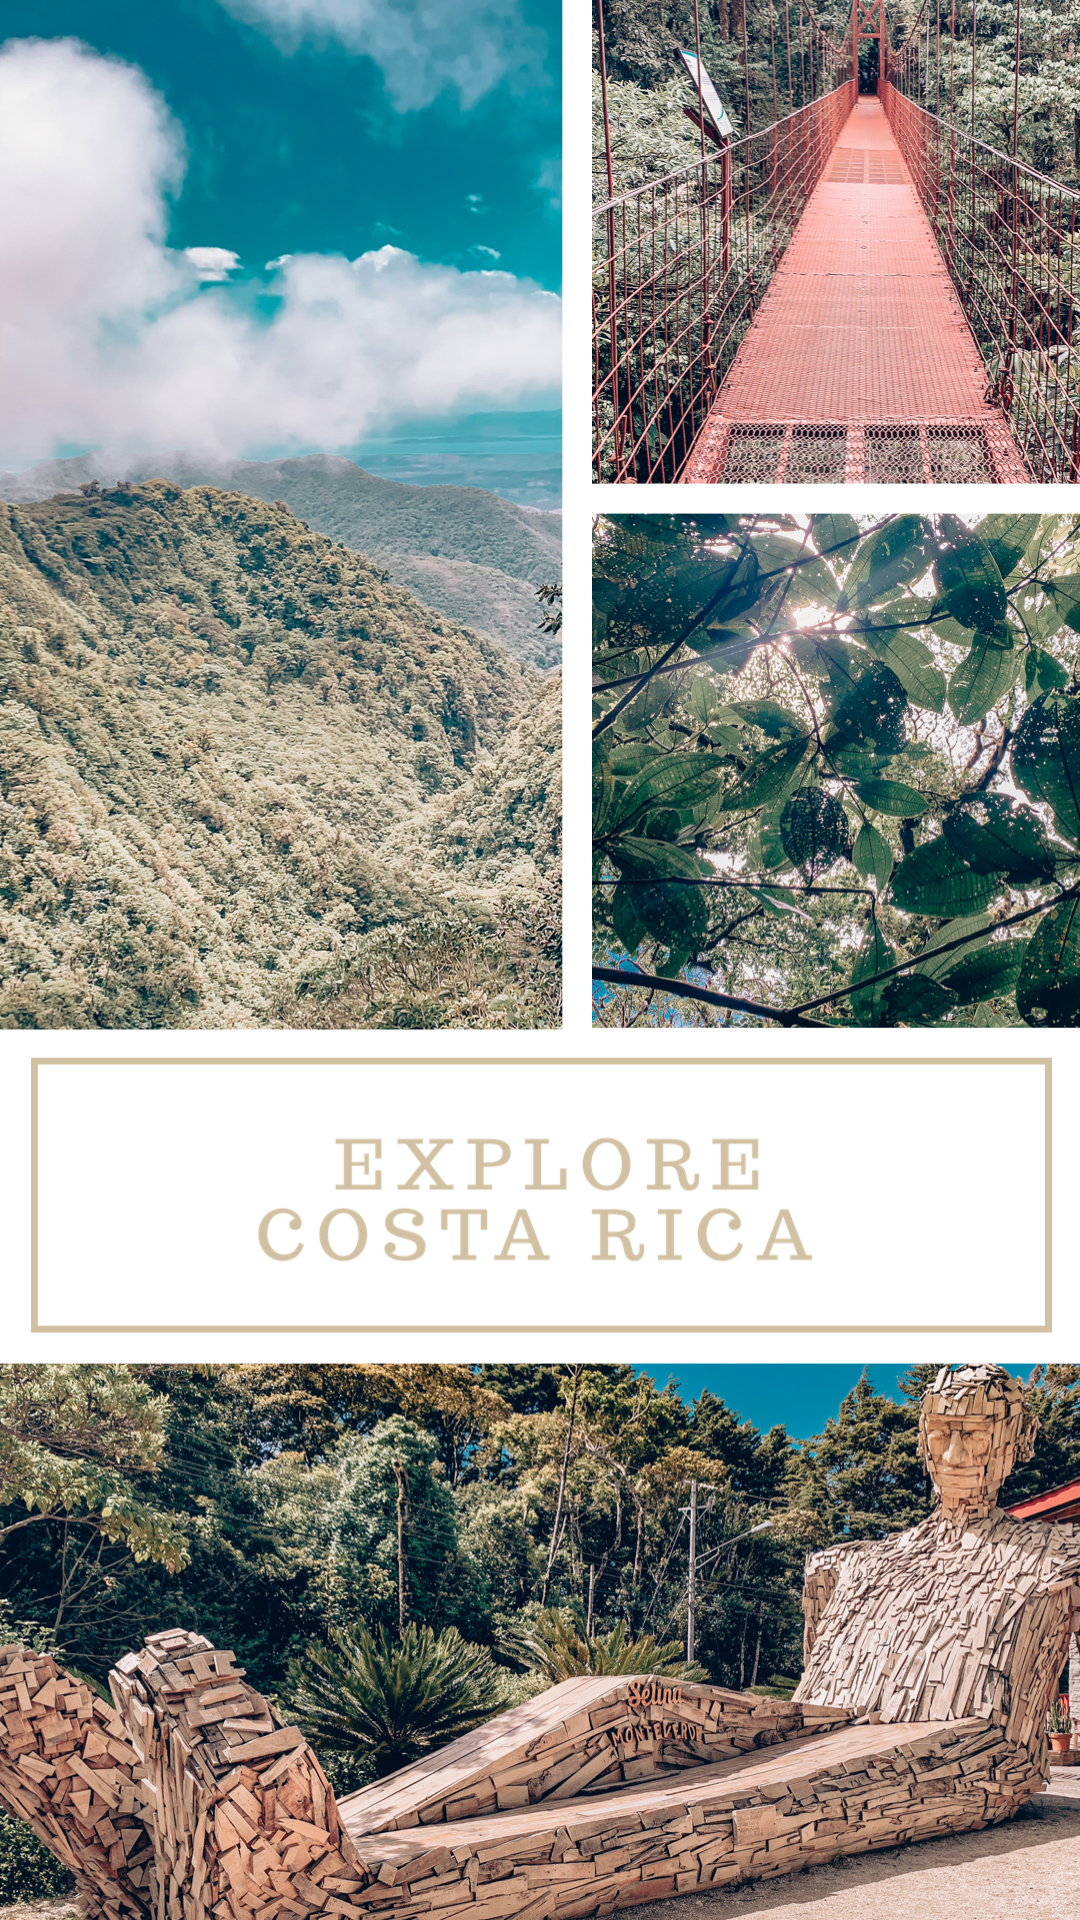 Explore Costa Rica, Discover Costa Rica, Travel Costa Rica